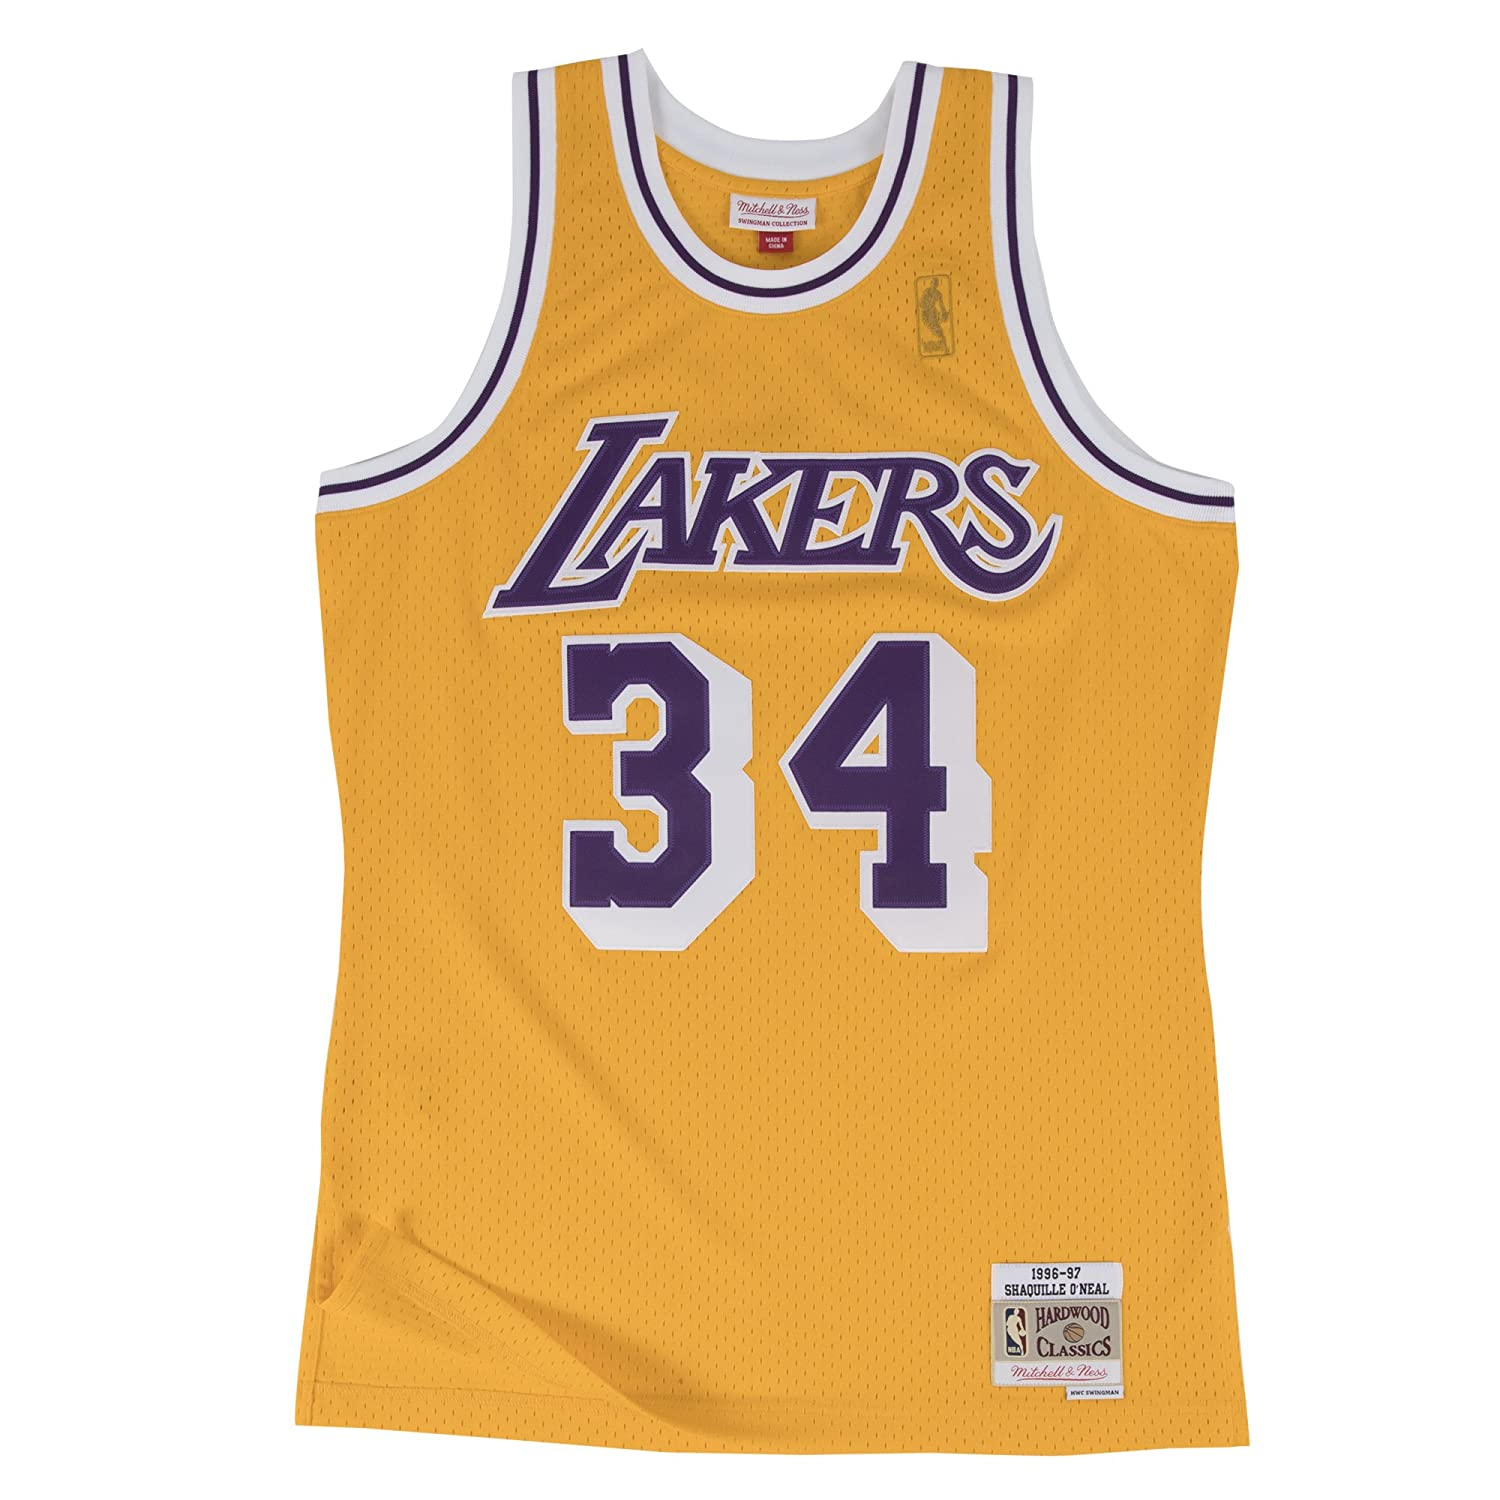 105ac6800d0cf Amazon.com : Mitchell & Ness Yellow/Purple Los Angeles Lakers Shaquille  O'Neal Swingman Jersey : Clothing